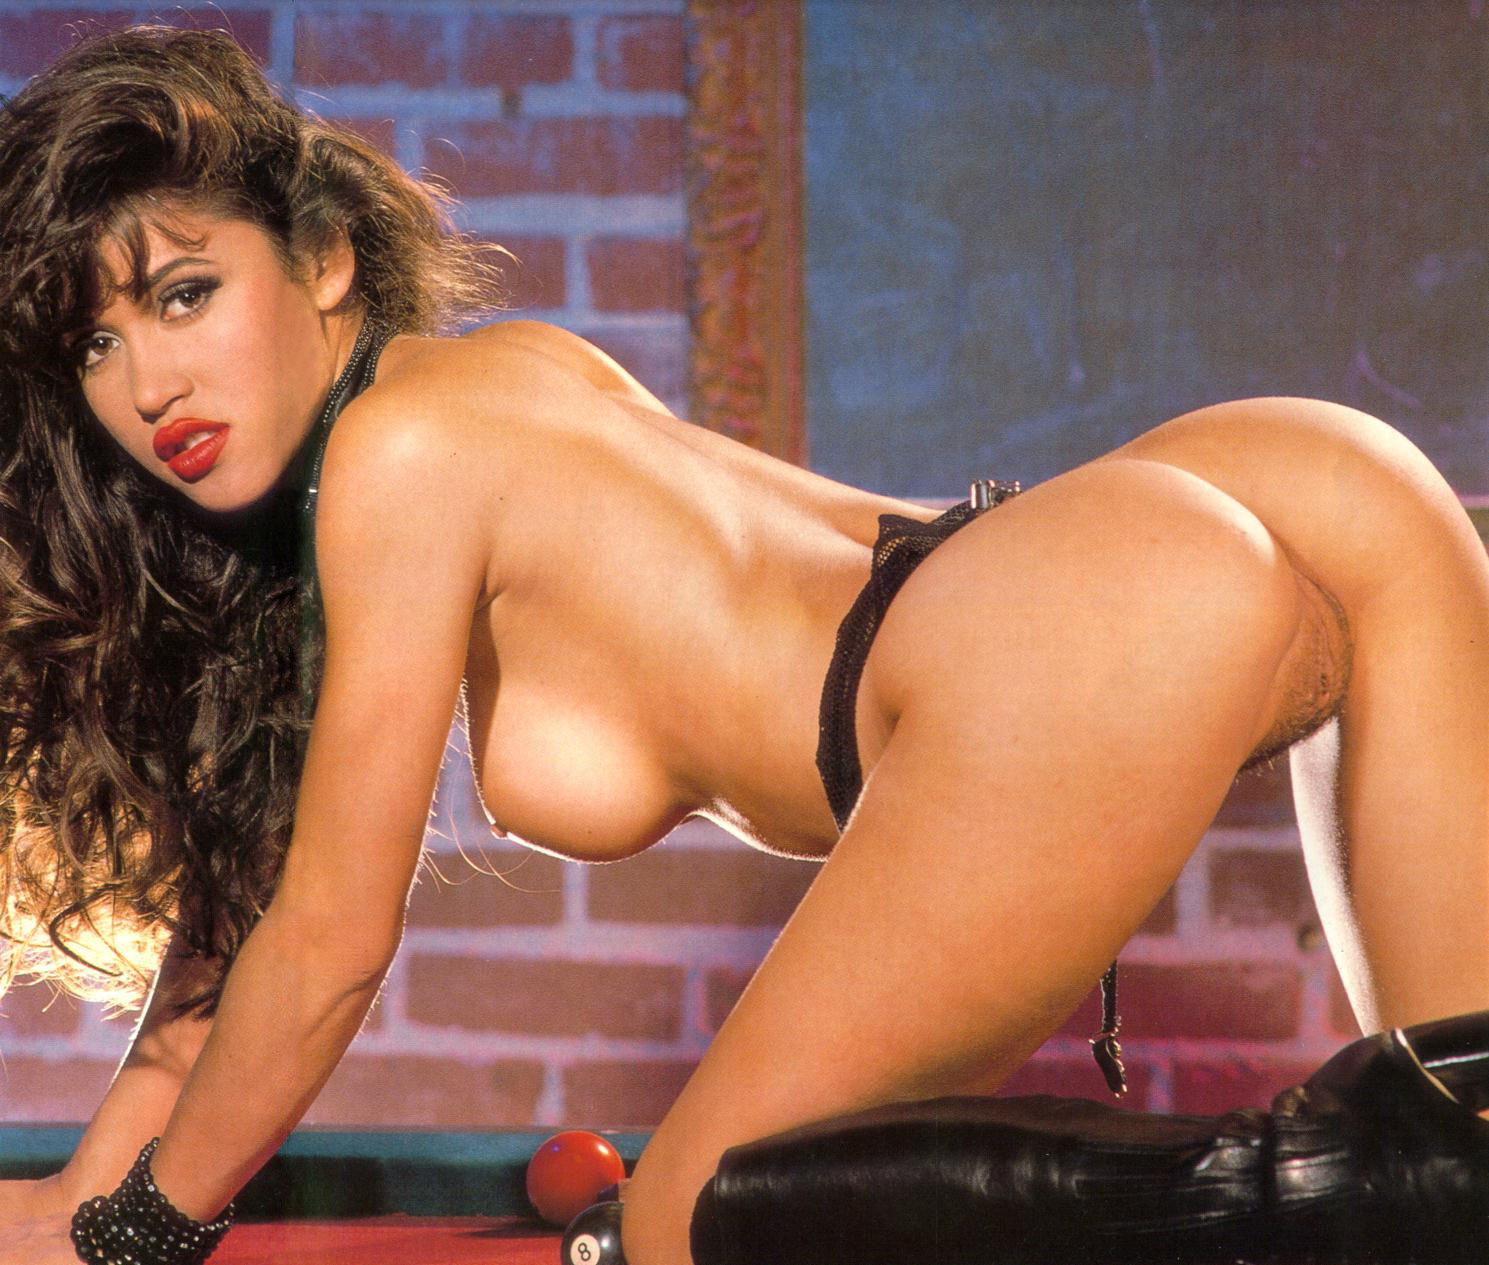 Anitra ford nude pics pics, sex tape ancensored